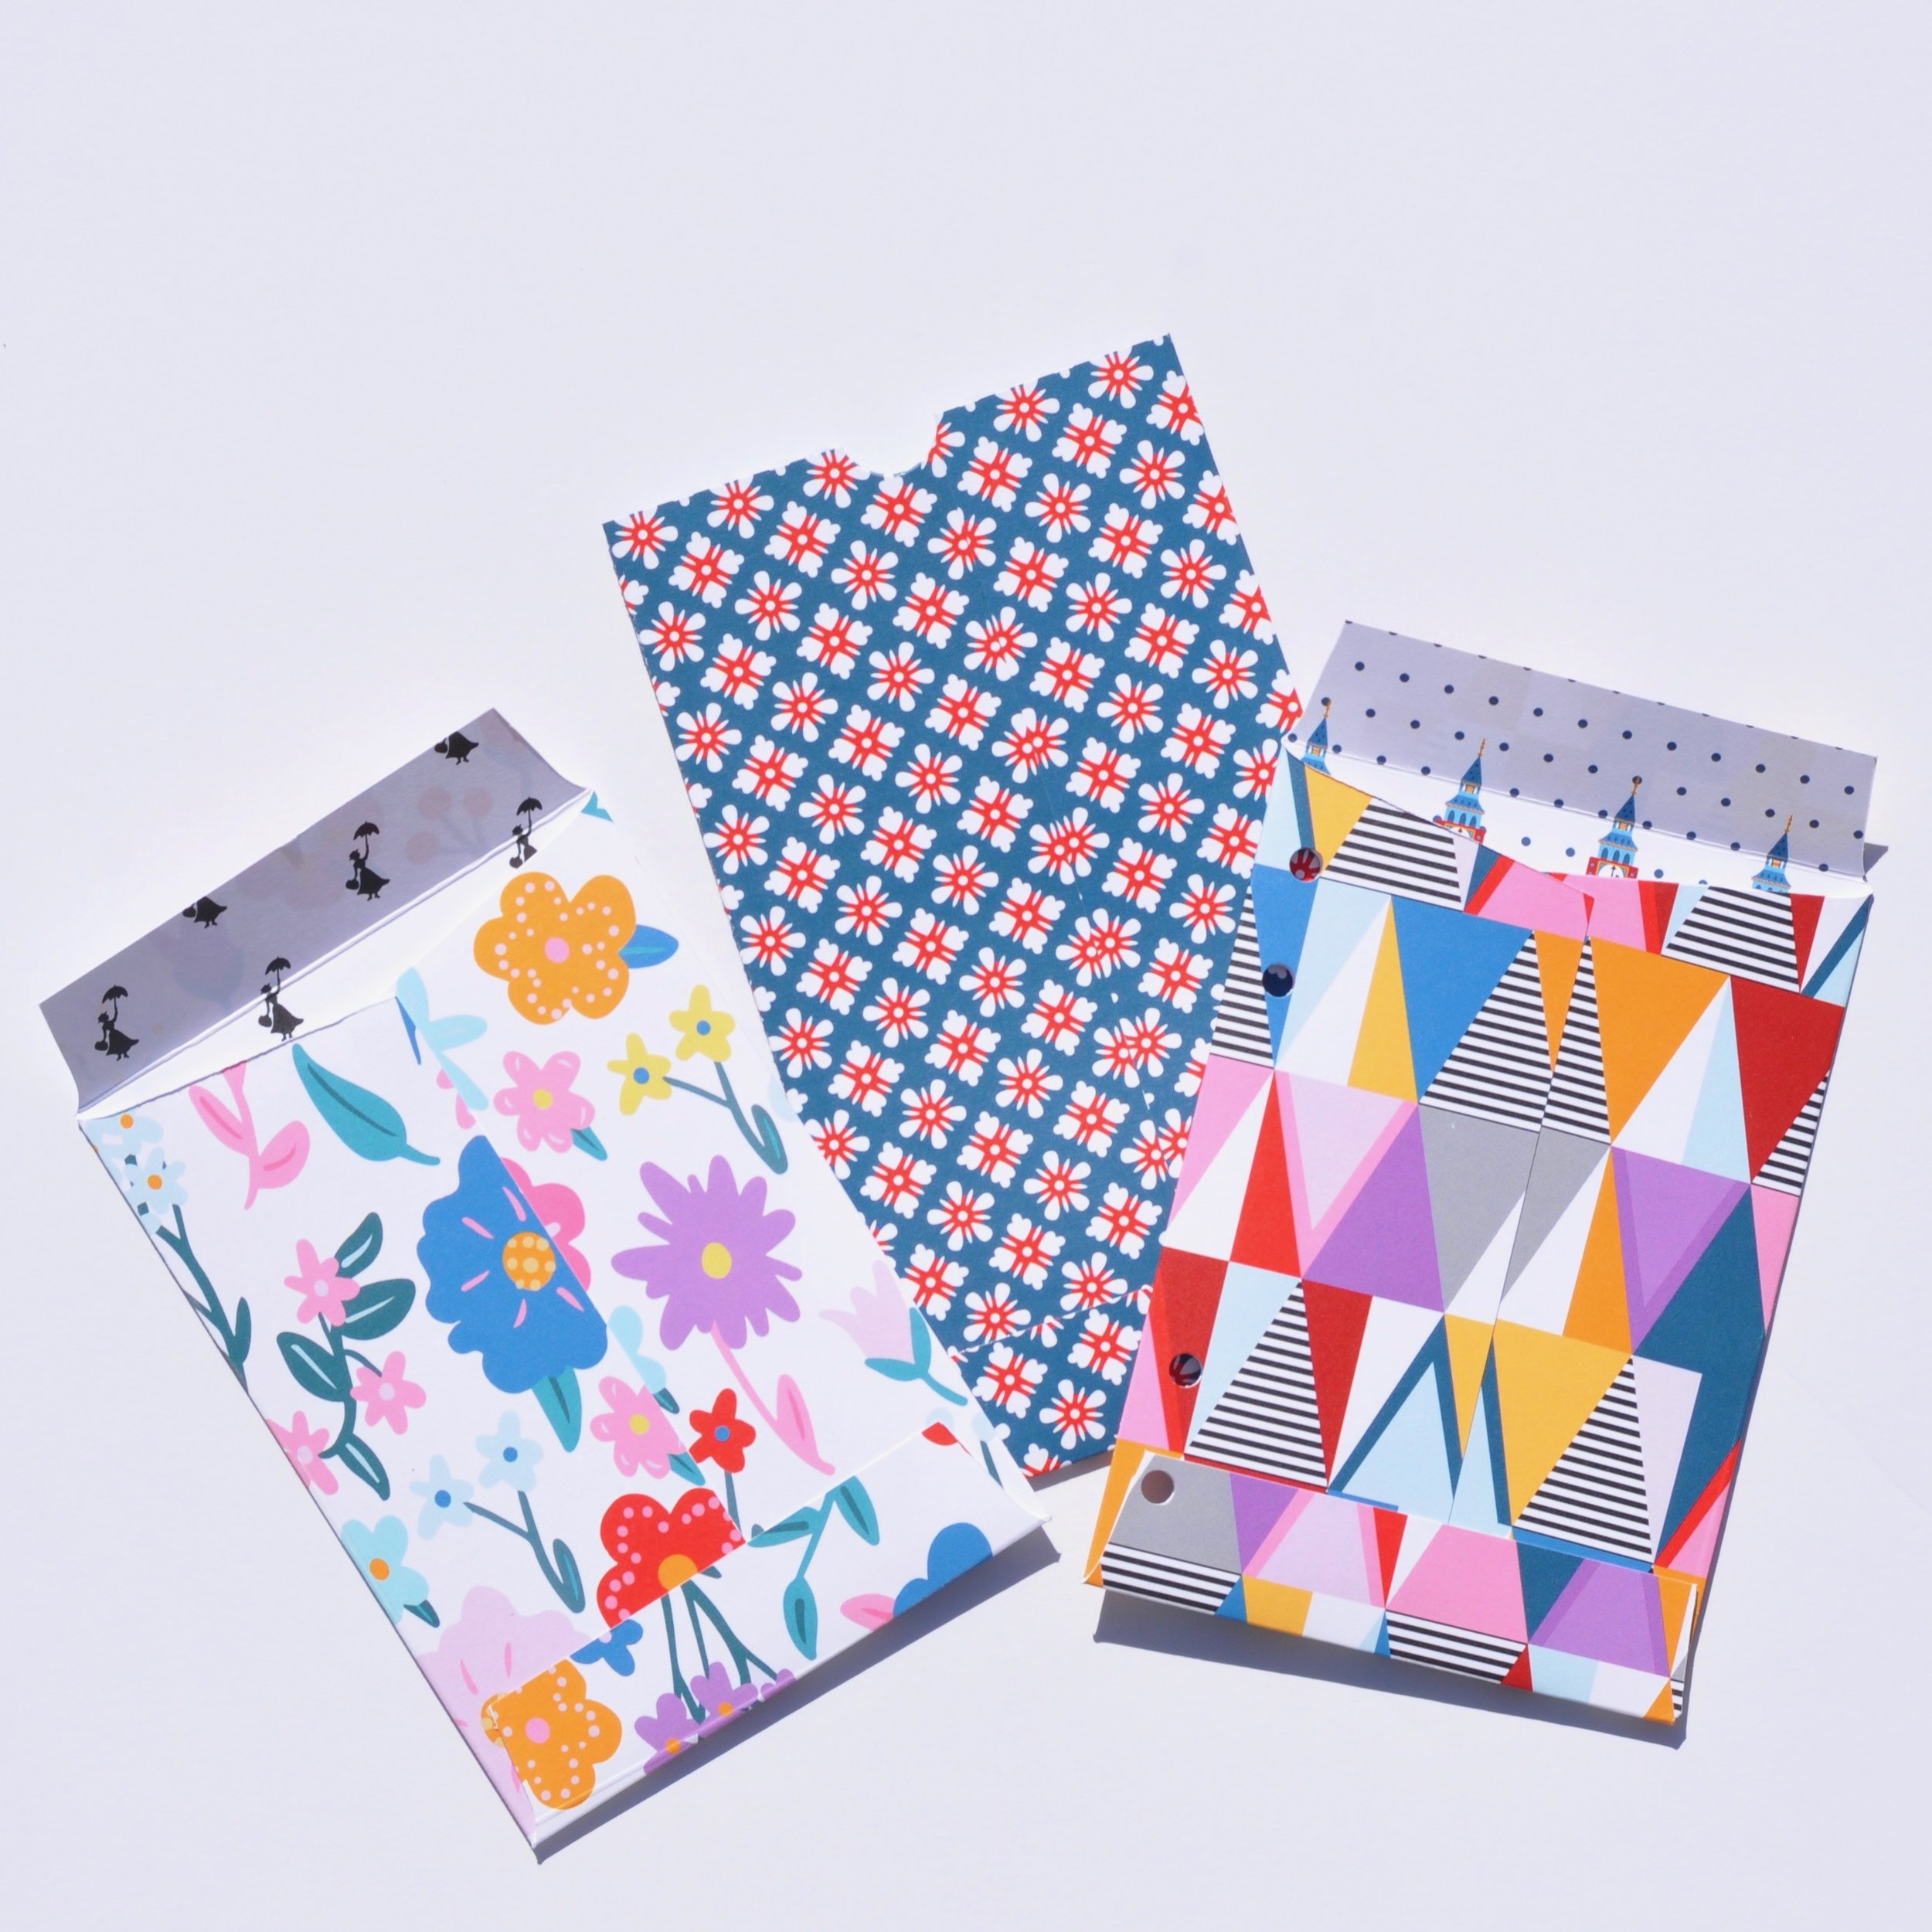 Now I can store loose bits and pieces I have collected in these pockets inside my album. I could also use this envelope to send some snail mail. The Possibilities are endless, because you can create these envelopes at any size! you could even add them to a scrapbook layout!